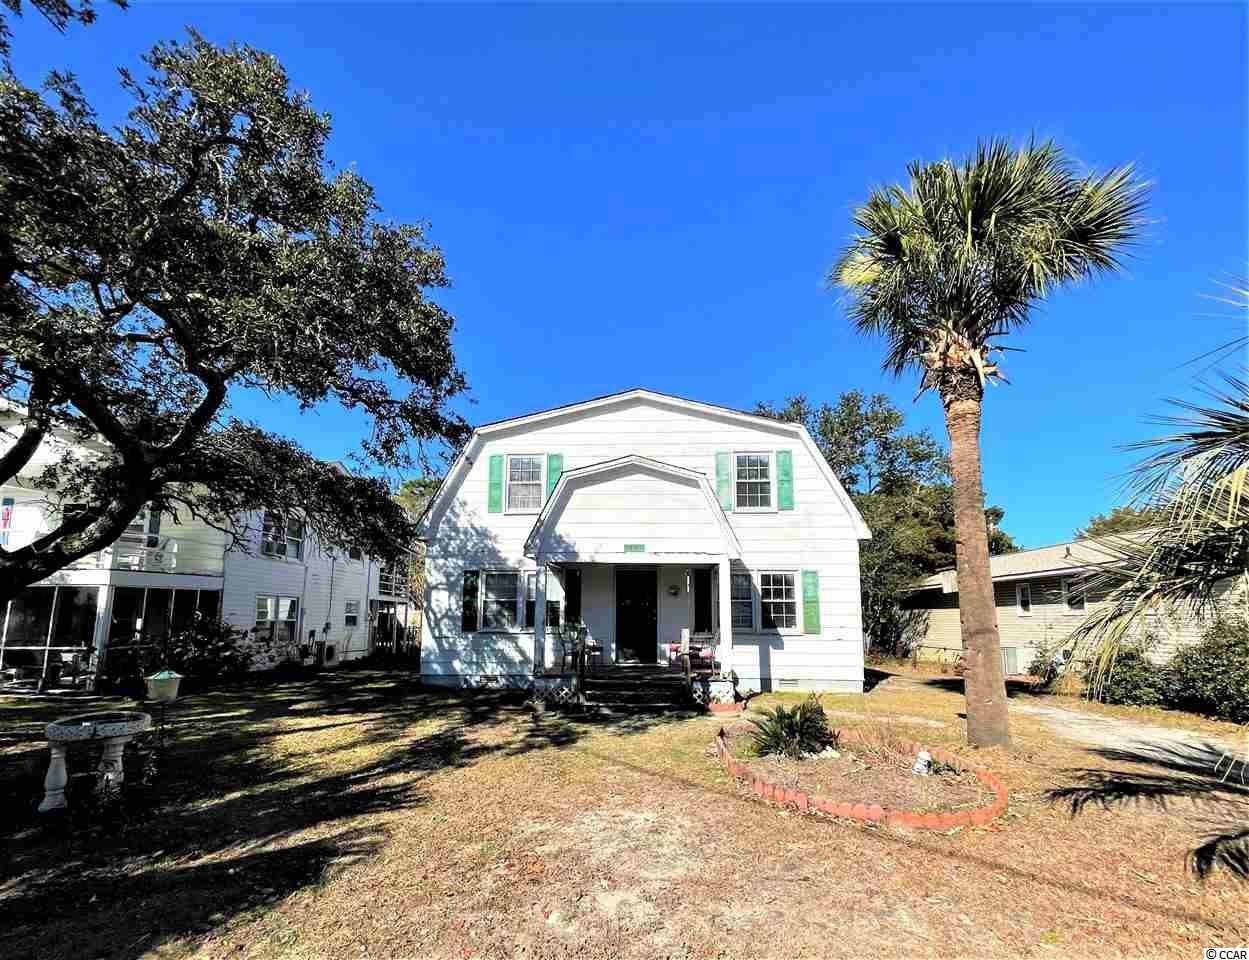 1802 Havens Dr. in North Myrtle Beach presents a unique, fixer-upper opportunity for the right homeowner or real estate investor! This 4 bedroom, 2 bathroom, Dutch Colonial style home isn't something you see at the beach everyday! Loaded with quaint features, exposed 20' ceilings, and stately views from the catwalk, this property is sure to dazzle. Some of these features include the original hardwood floors, grand staircase, built in bookshelves, first and second floor bedrooms, and the abundance of natural South Carolina sunshine beaming through the windows. This home sits on a large lot that is just under a quarter acre and is nestled approximately 2 blocks from the beach and the beautiful Atlantic Ocean. If you are looking for a vacation home, a full-time residence, or an investment opportunity this home has remarkable potential when paired with the right person's drive and vision. Property will be sold as-is. Information and measurements are estimated and should be verified by the buyer and/or the buyer's agent